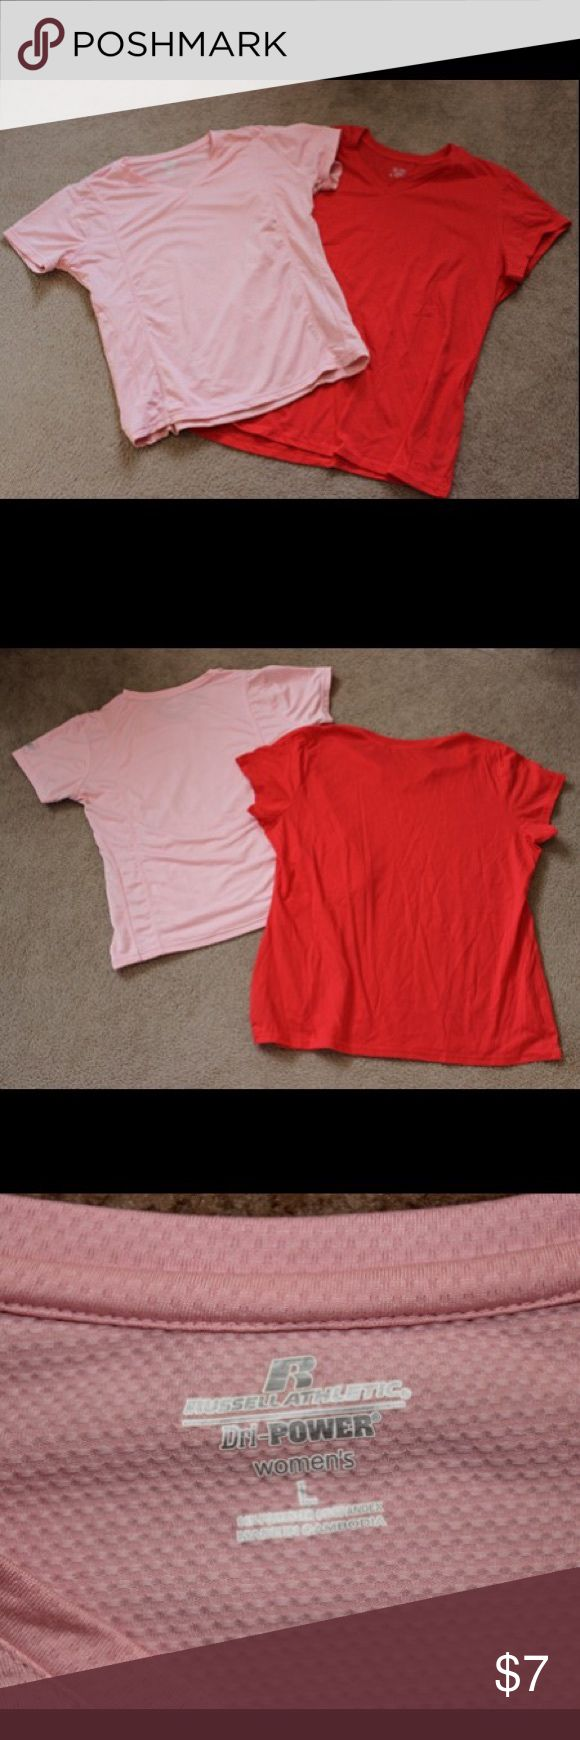 Champion & Russell Tee's Size L & XL Set includes 2 shirts. The pink tee has a v-neck, is made by Russell Athletics, is made of 94% polyester and 6% spandex, and is size Large. The red tee also has a v-neck, is made by Champion, is made of 60% cotton and 40% polyester, and is size XL. Both are in great condition. Worn once, if that. Champion Tops Tees - Short Sleeve